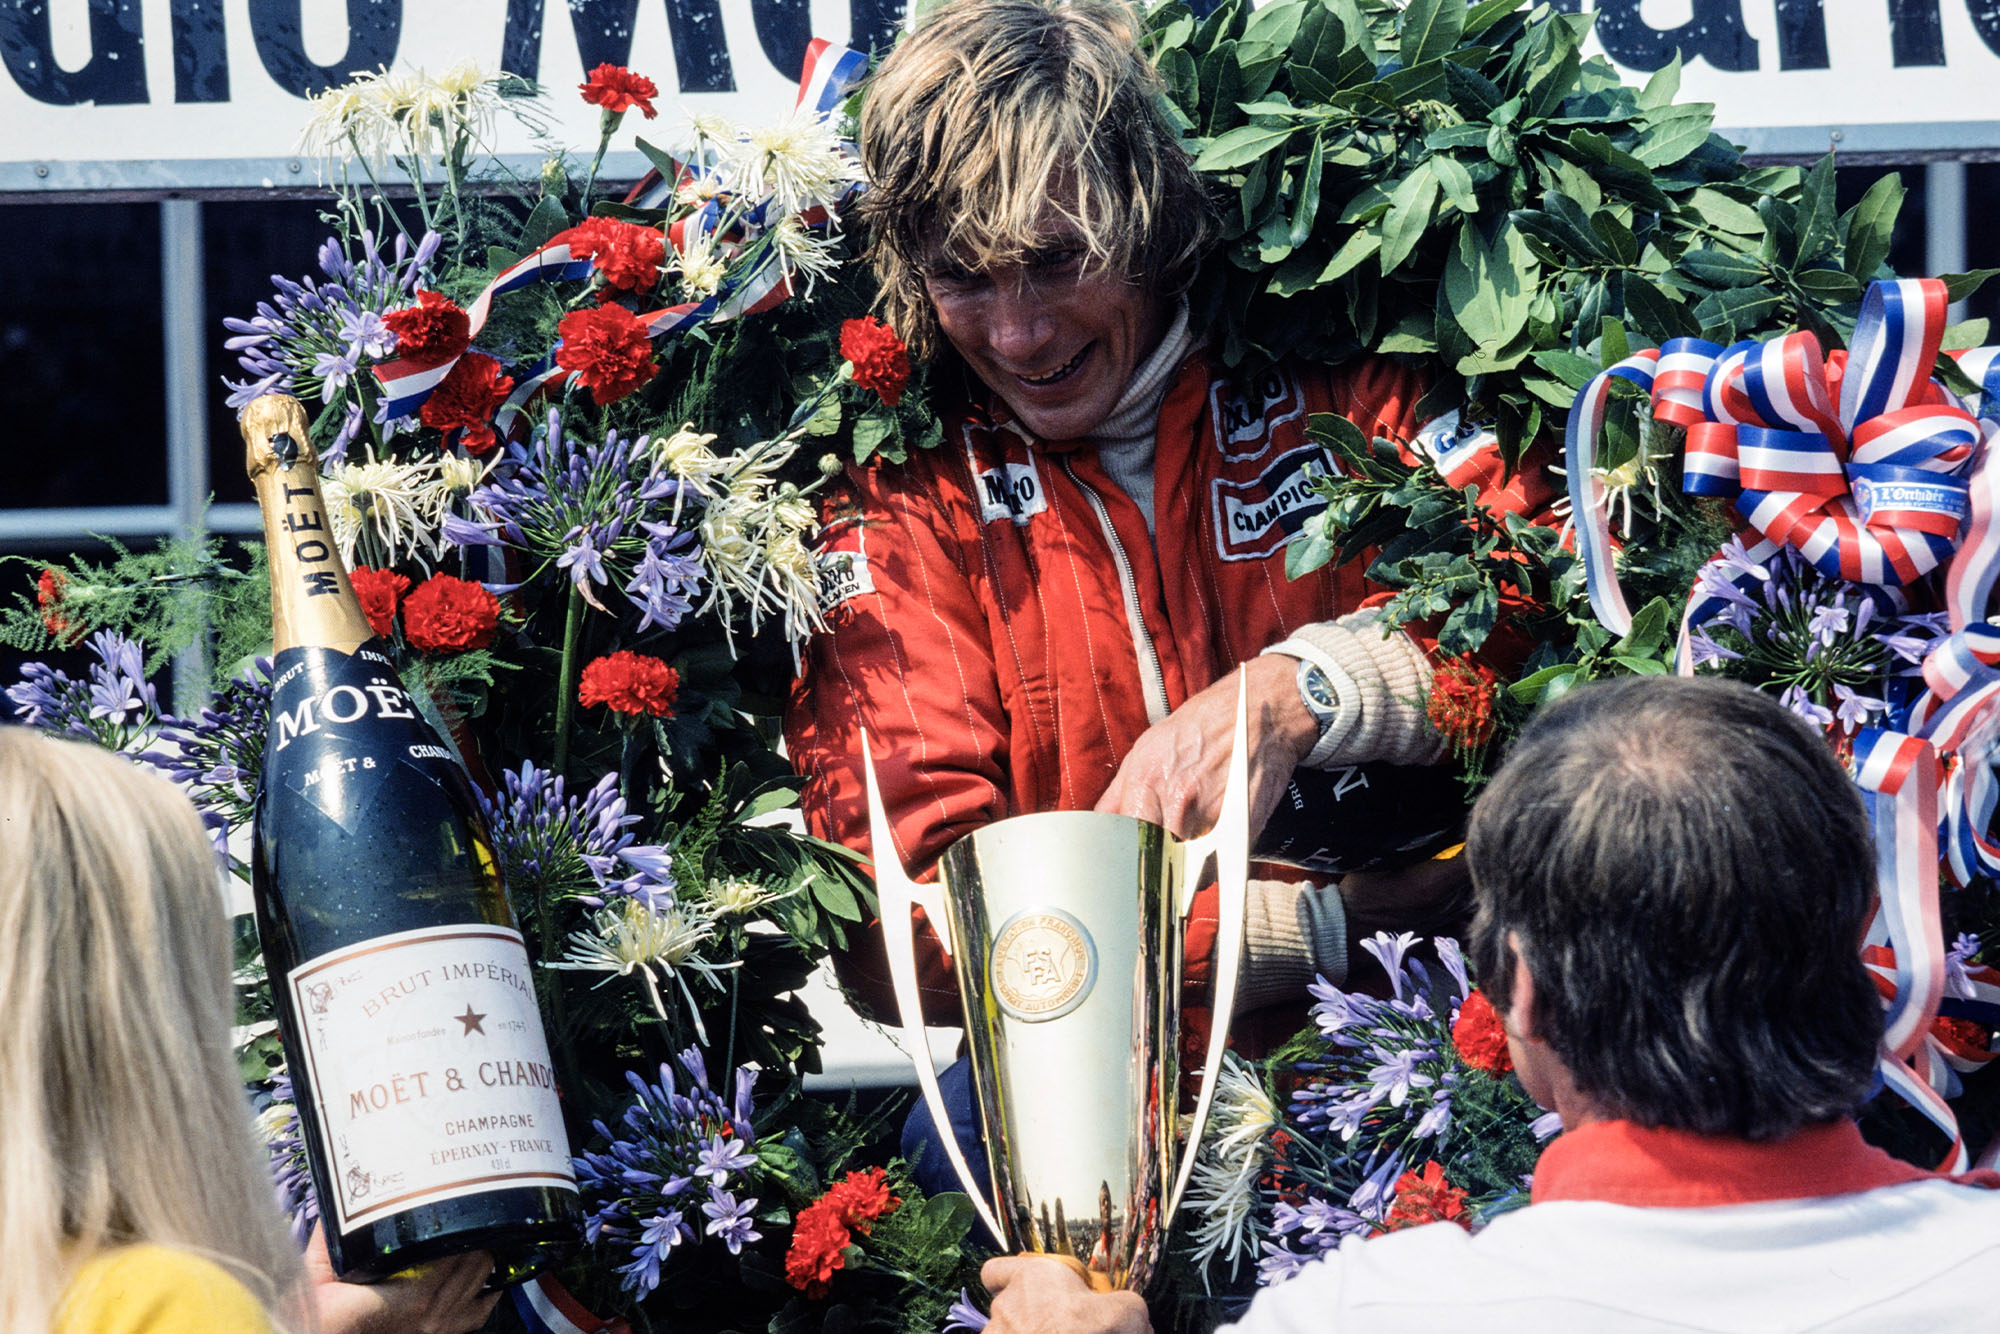 James Hunt (McLaren) celebrates his victory at the 1976 French Grand Prix, Paul Ricard.